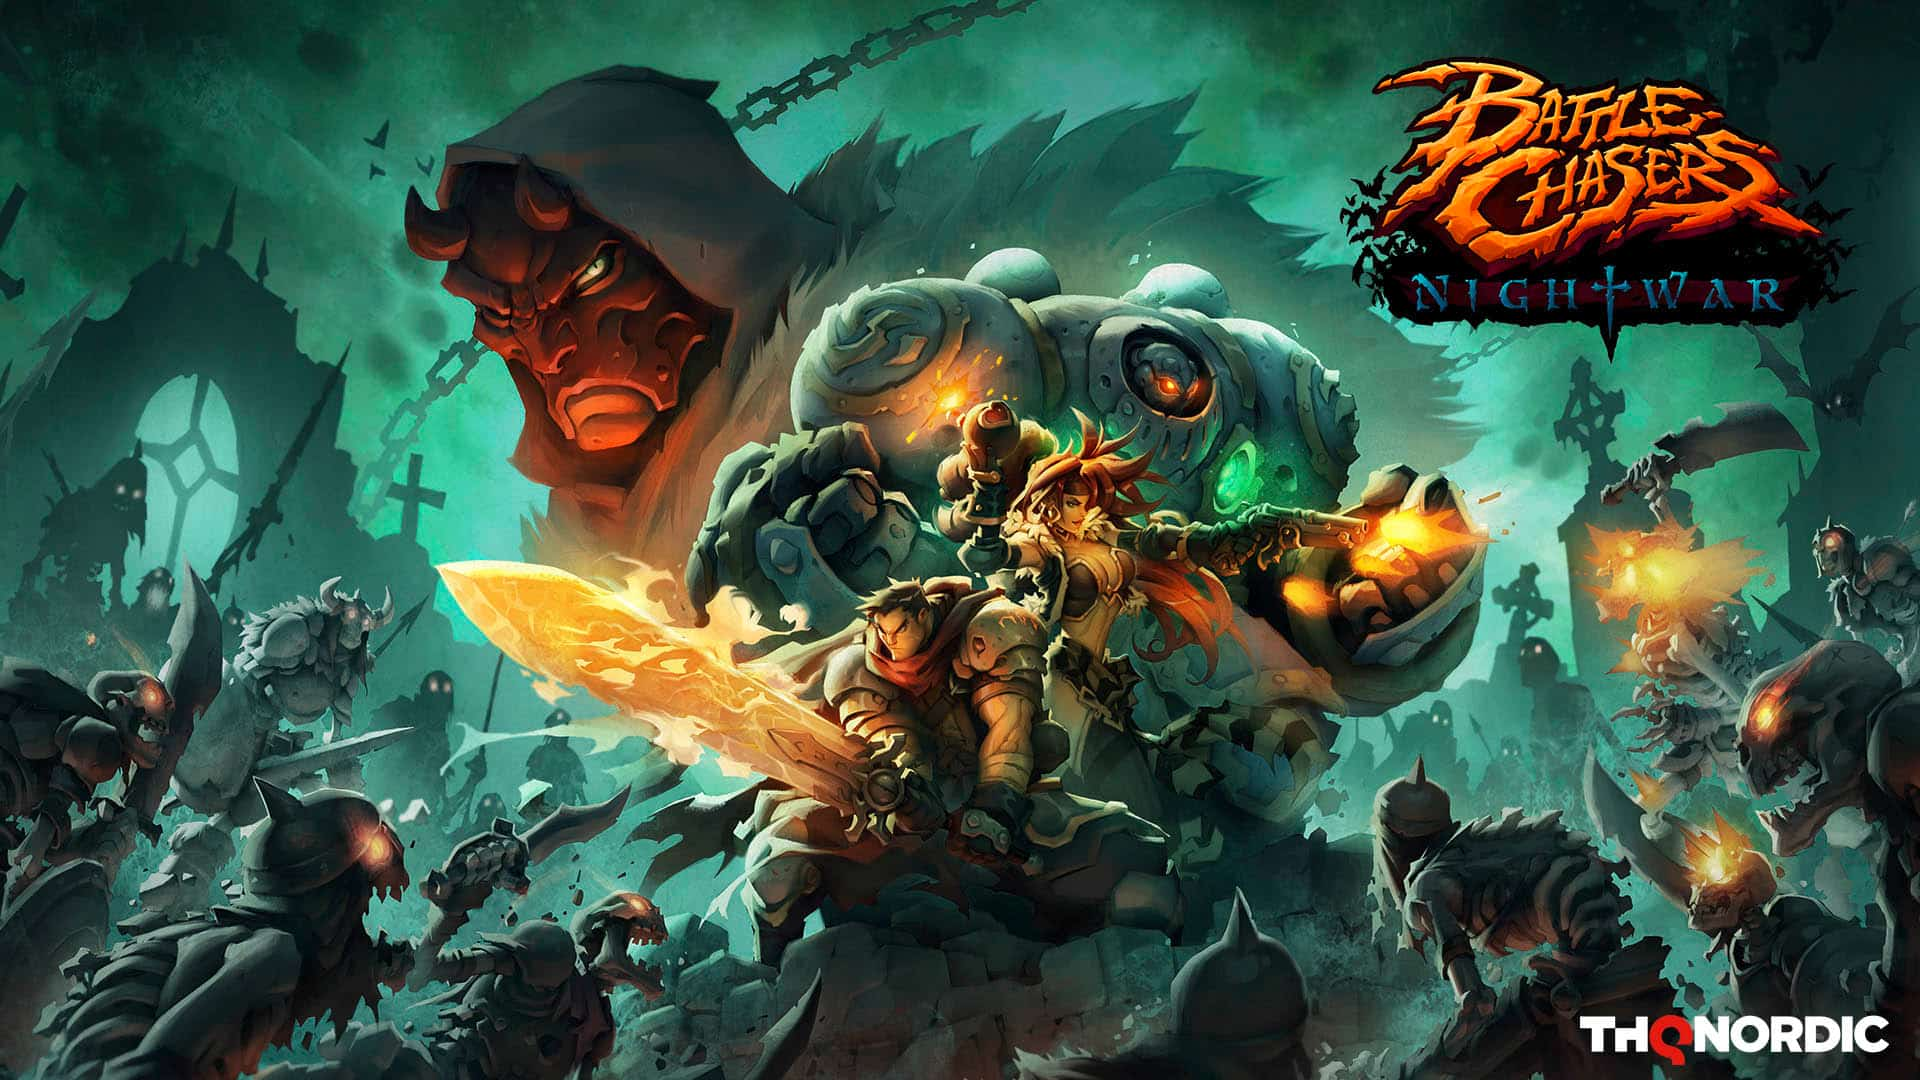 Deal Alert: Battle Chasers: Nightwar, Hack, Slash, Loot and more in Google Play Games sale this week!